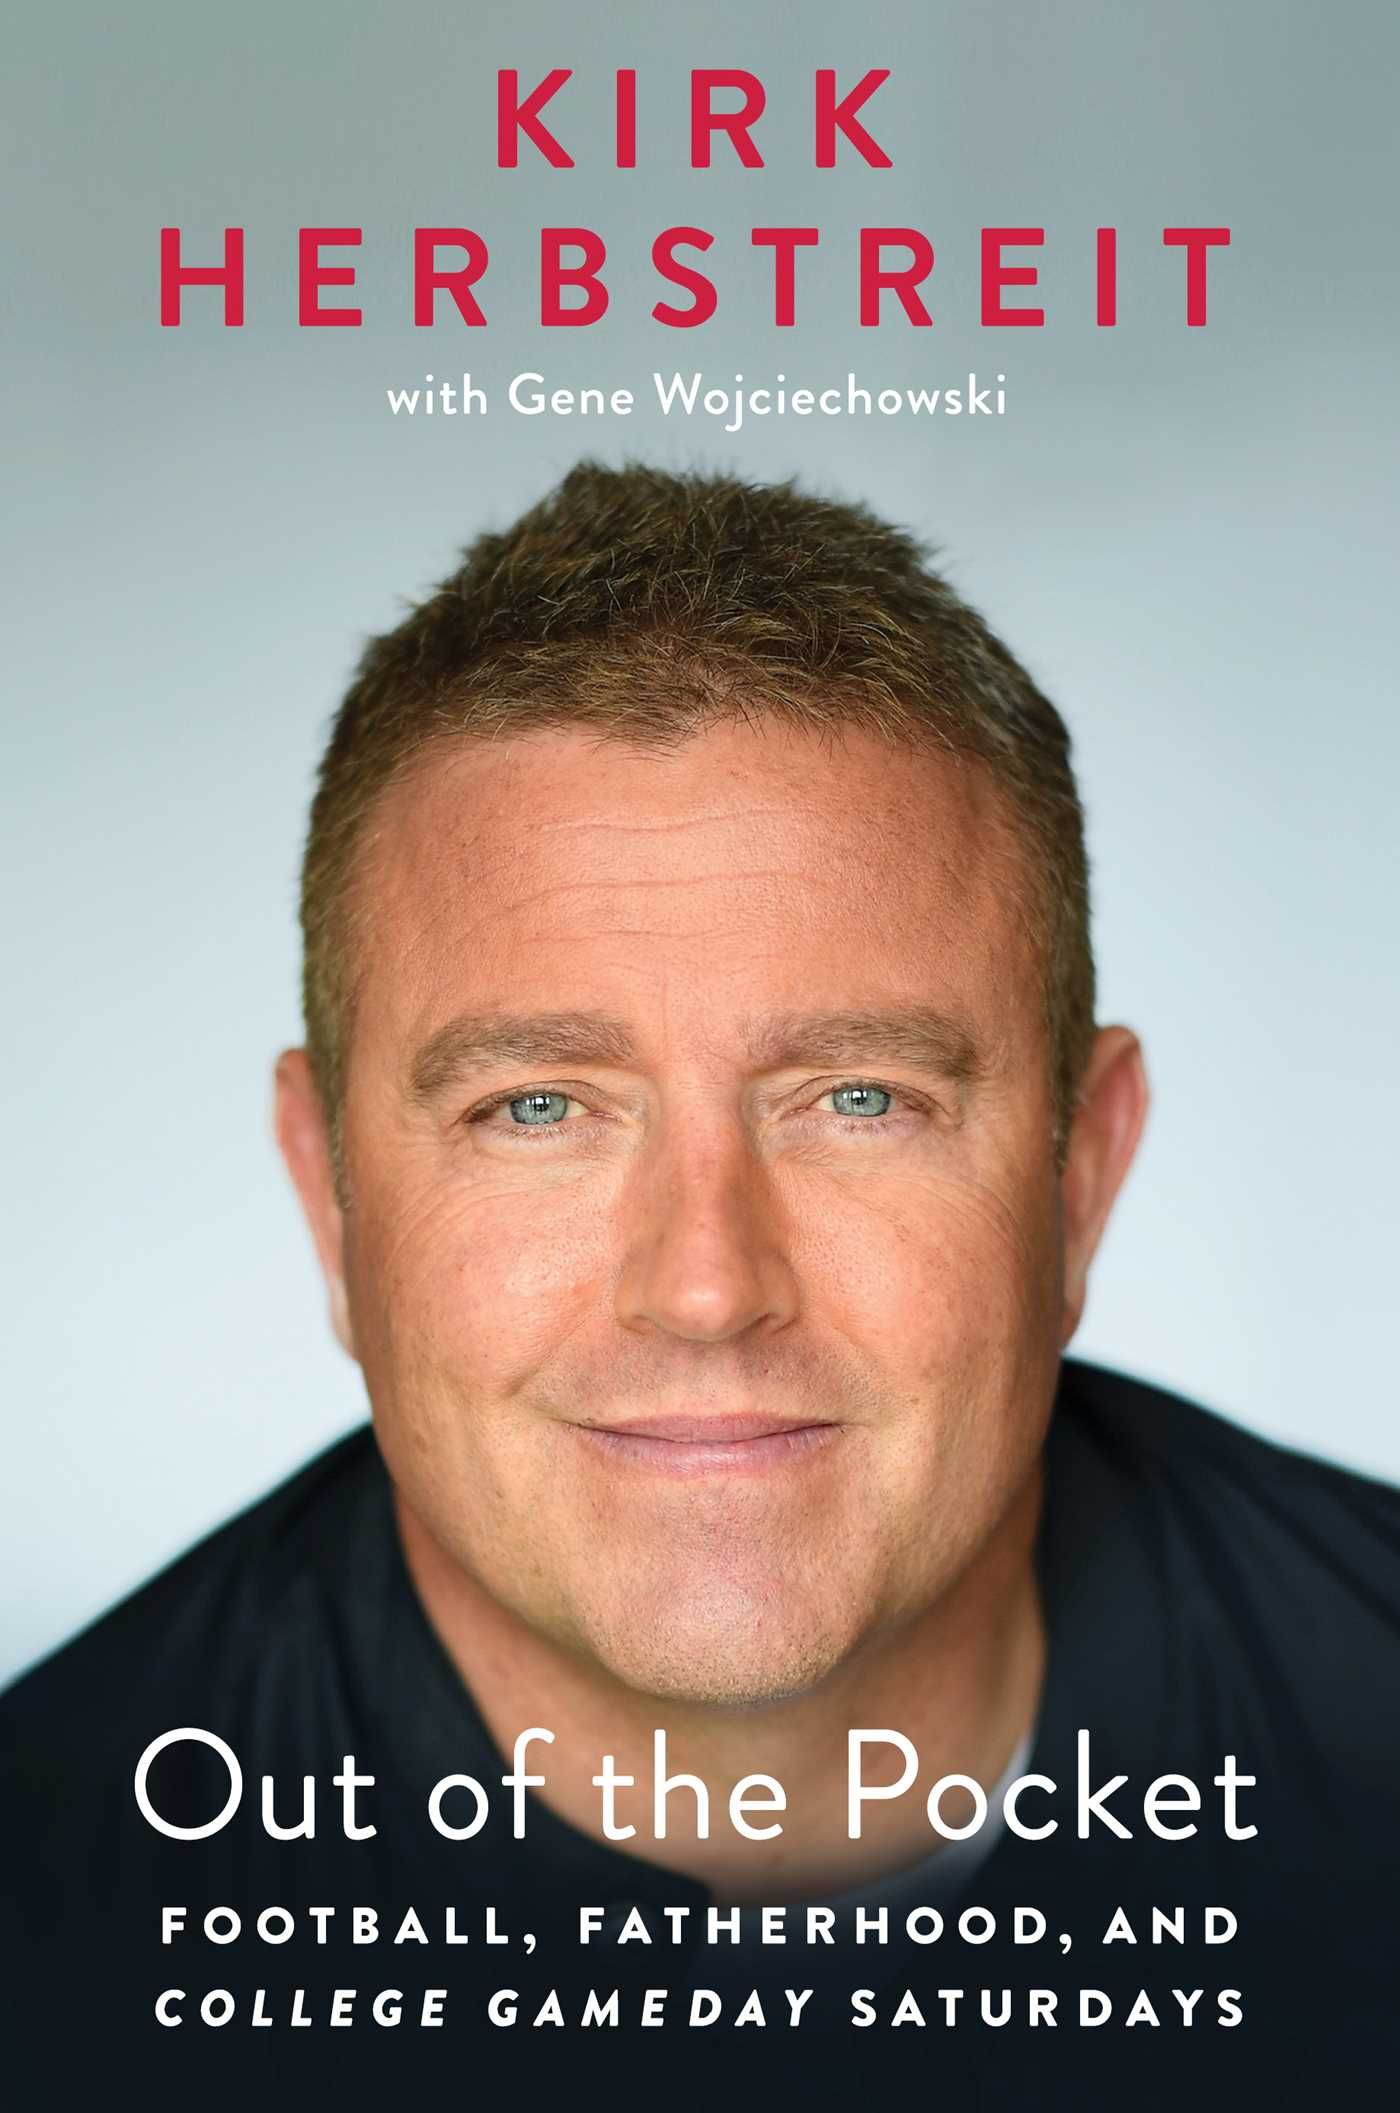 Out of the pocket: football, fatherhood, and college gameday Saturdays by Kirk Herbstreit with Gene Wojciechowski